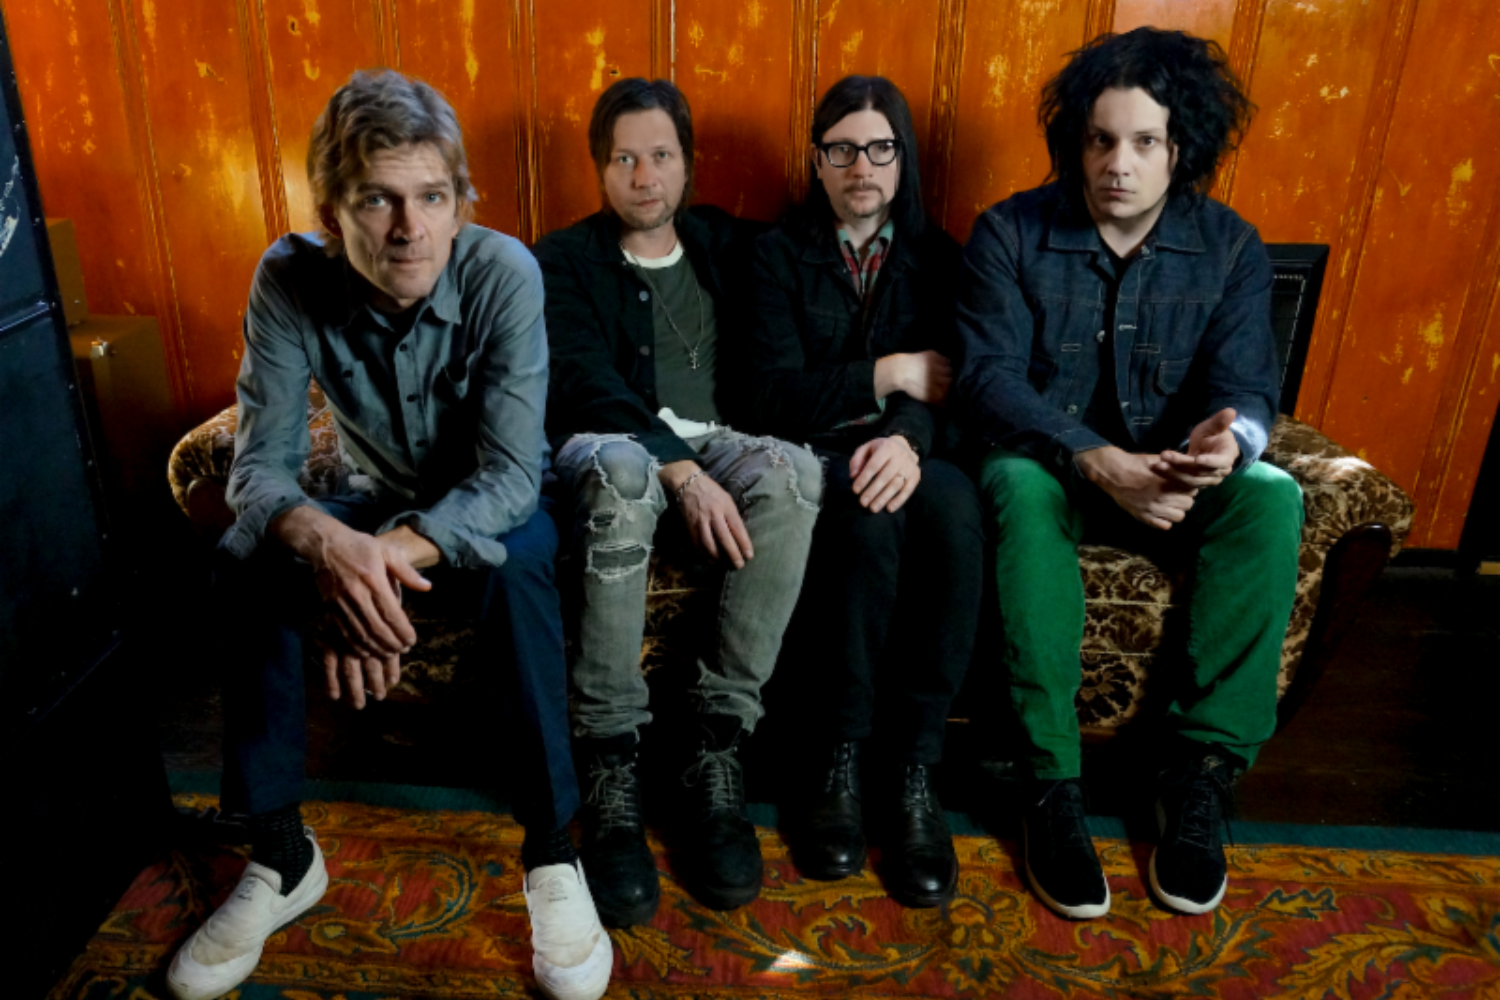 The Raconteurs release new track 'Hey Gyp (Dig The Slowness)'